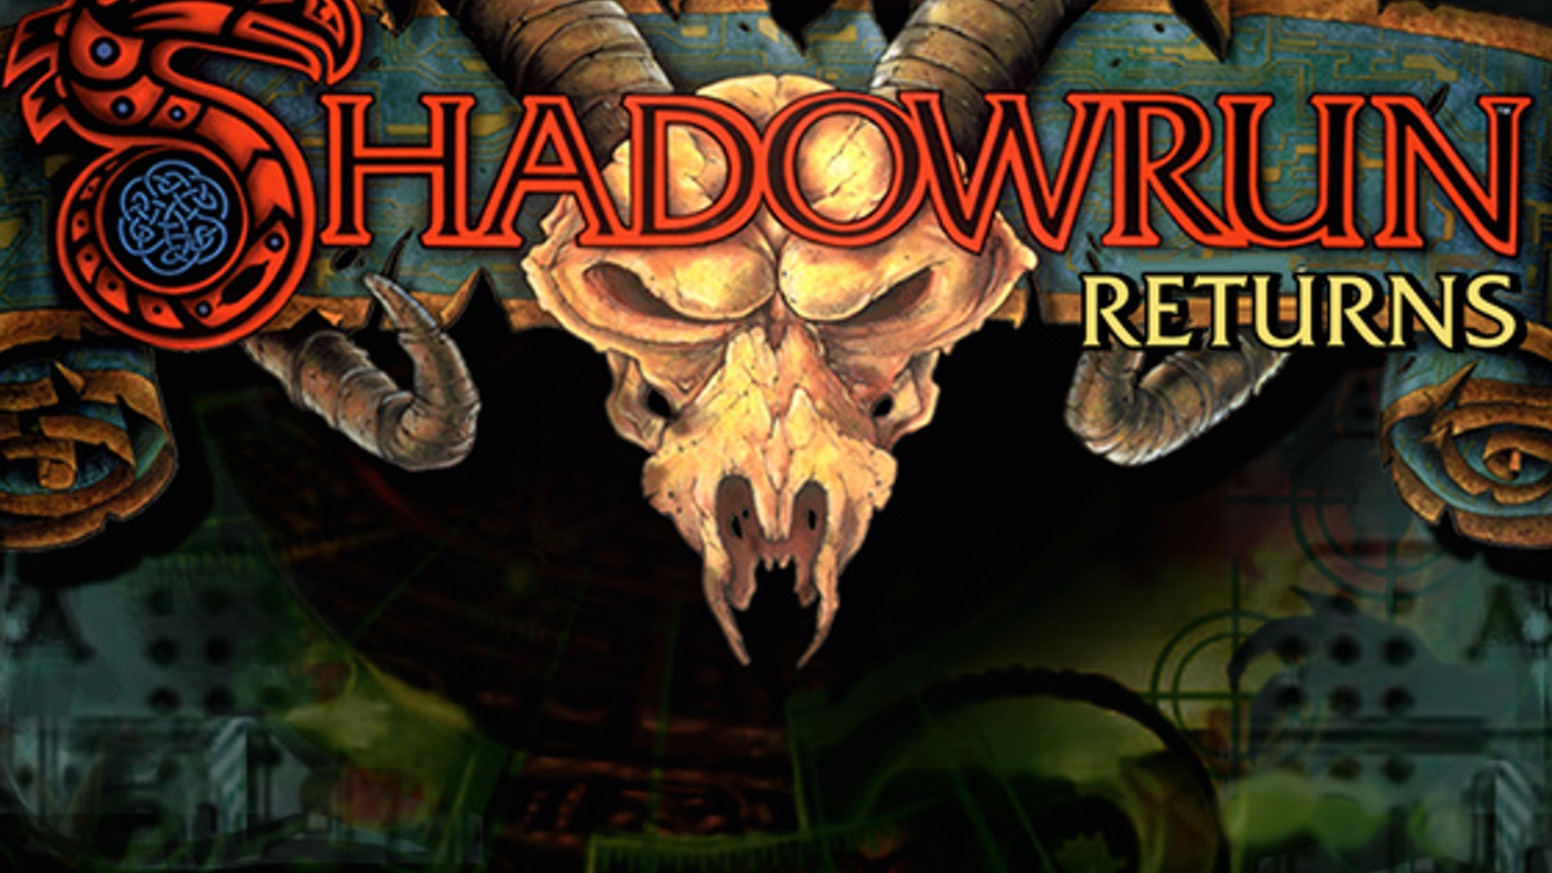 Shadowrun Returns brings back one of our most original & cherished game settings as a 2D turn-based RPG for tablets & PC.